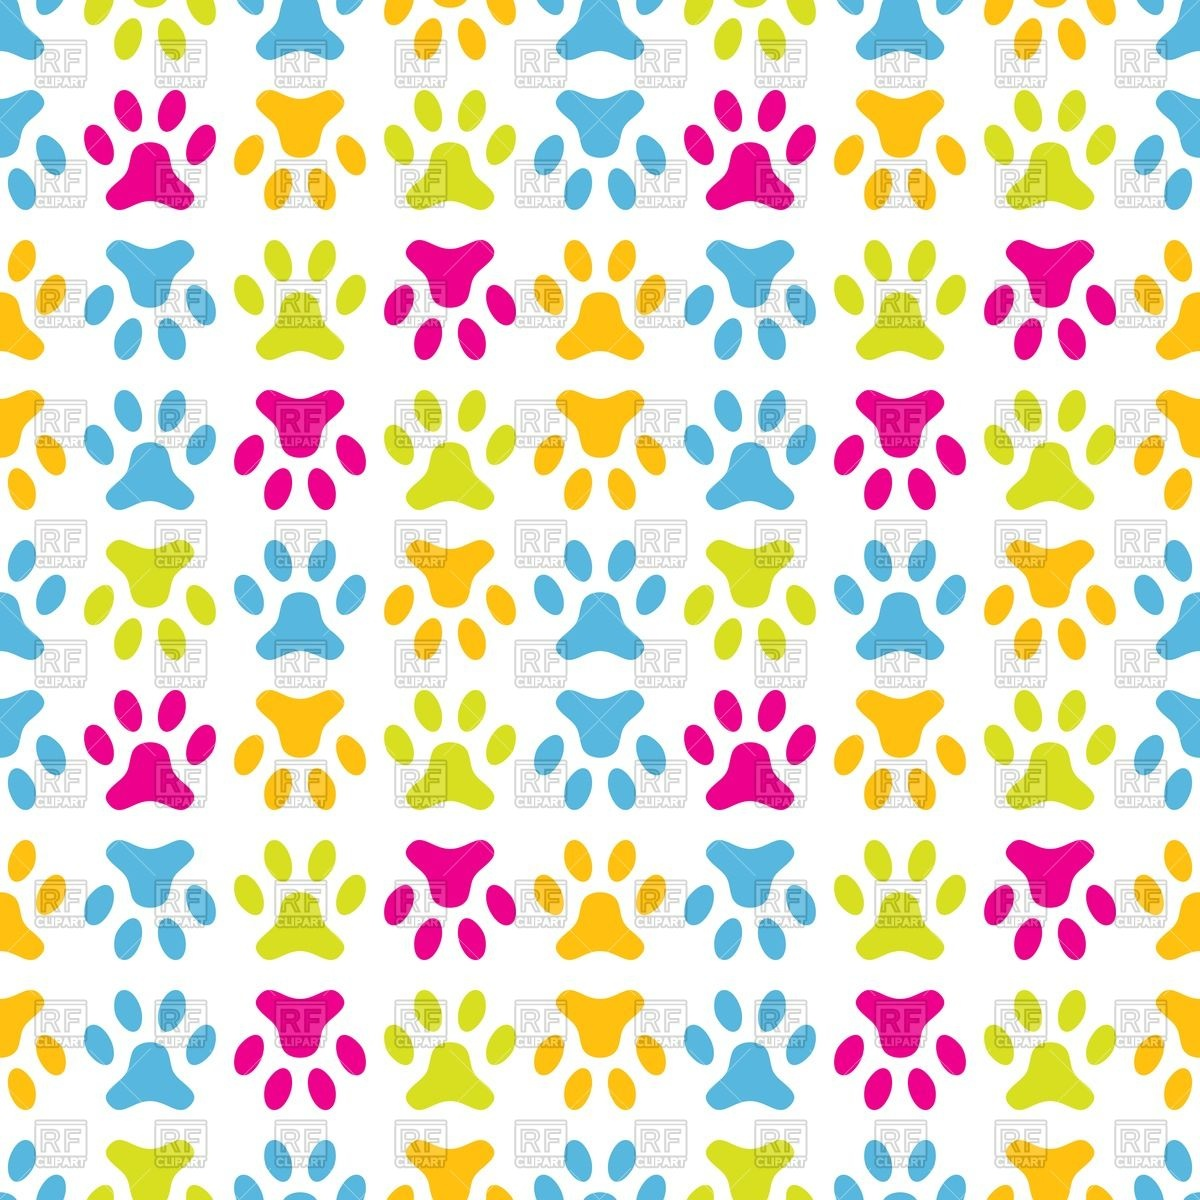 Paw clipart animal backgrounds Background clipart Paw paw Clipart